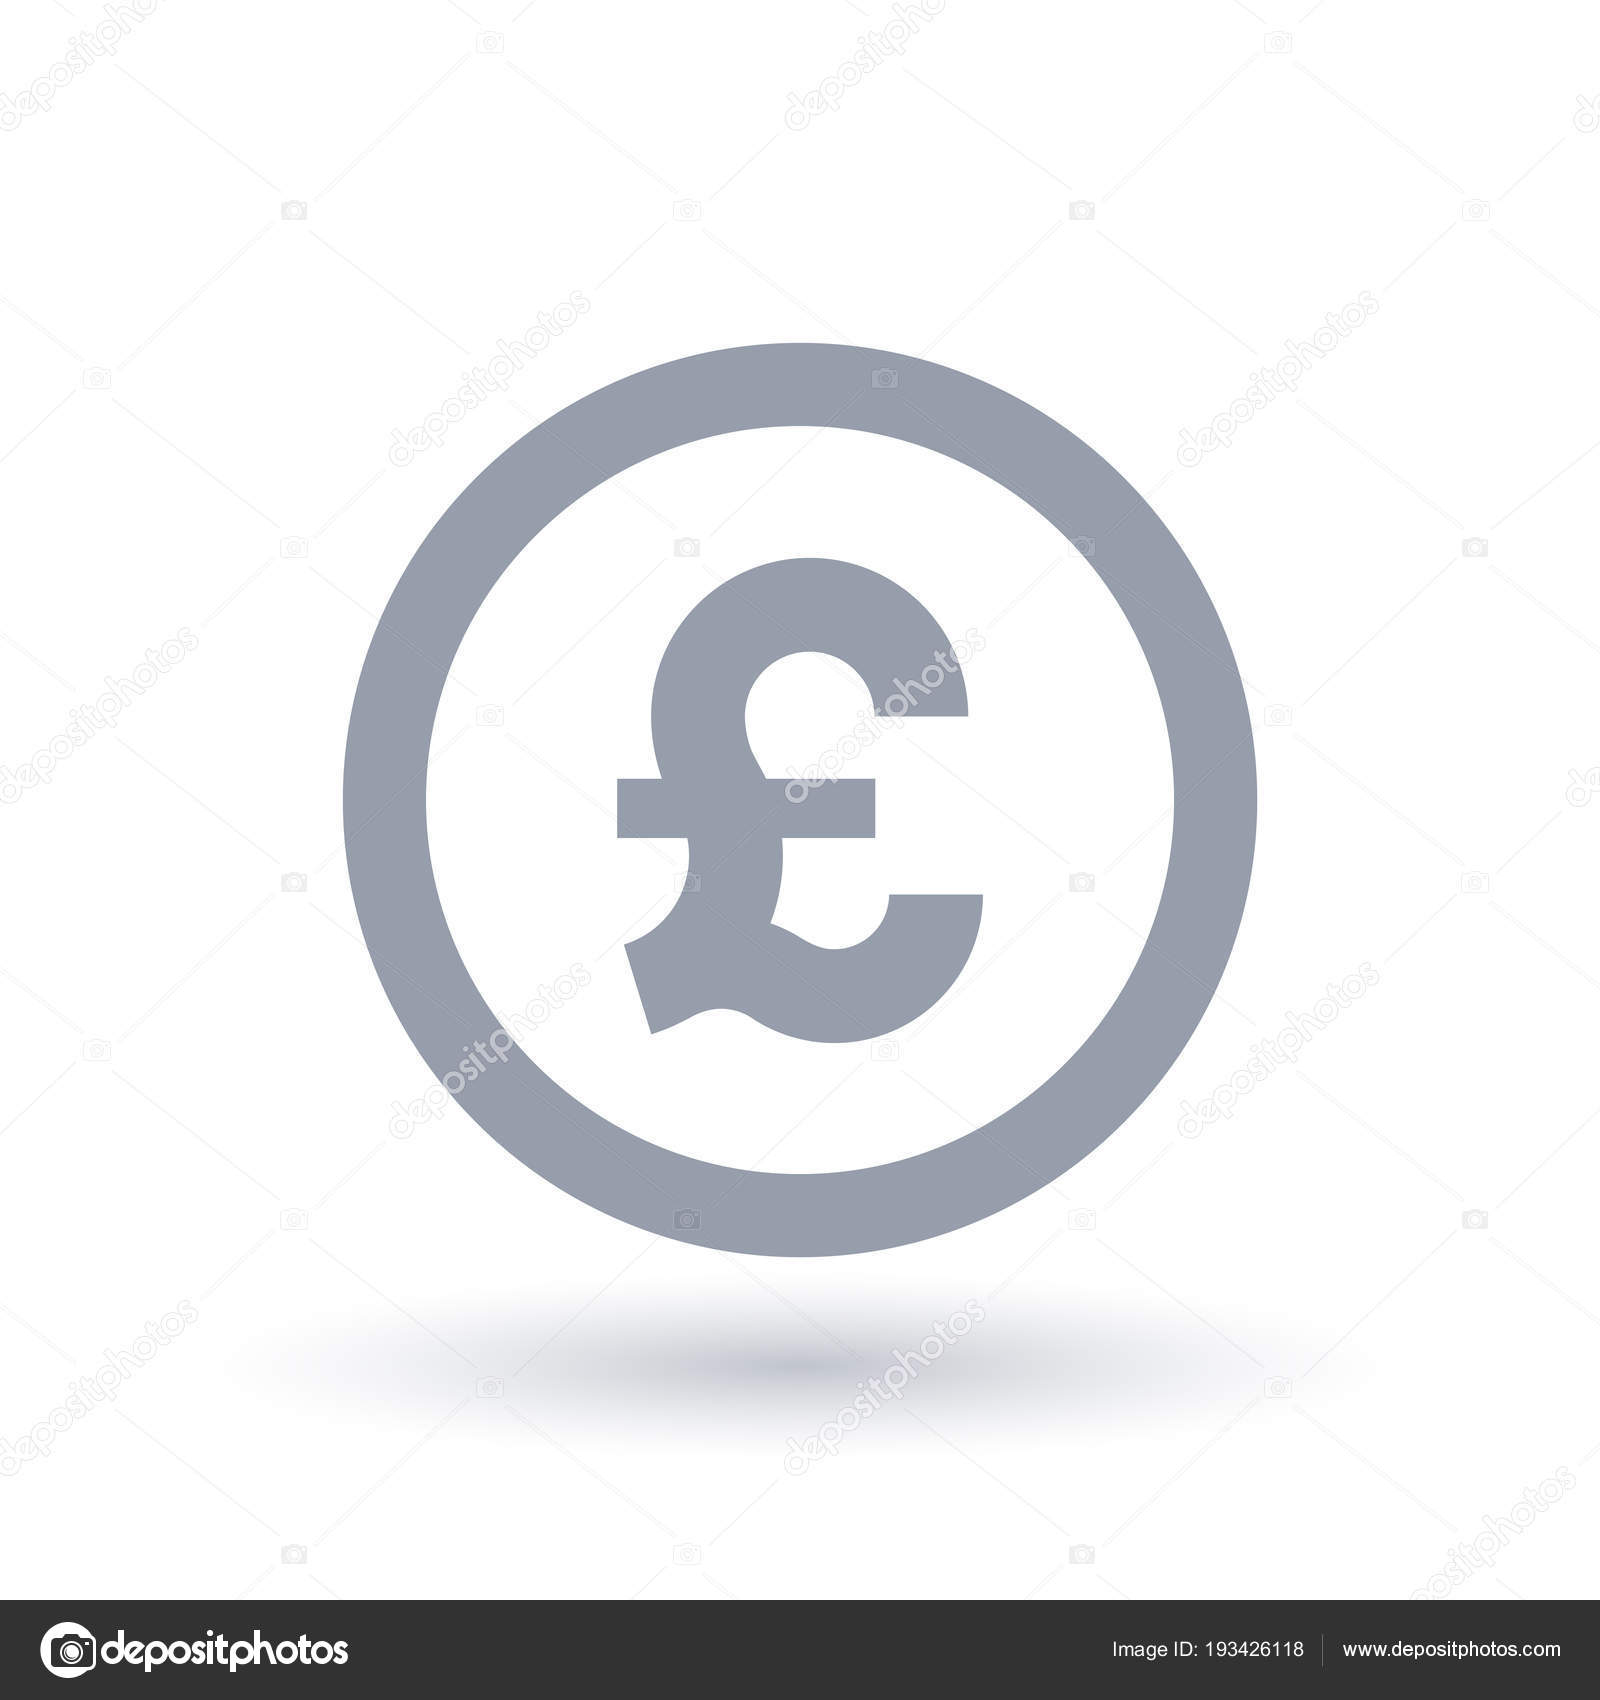 Great British Pound Symbol Britian Currency Symbol Stock Vector